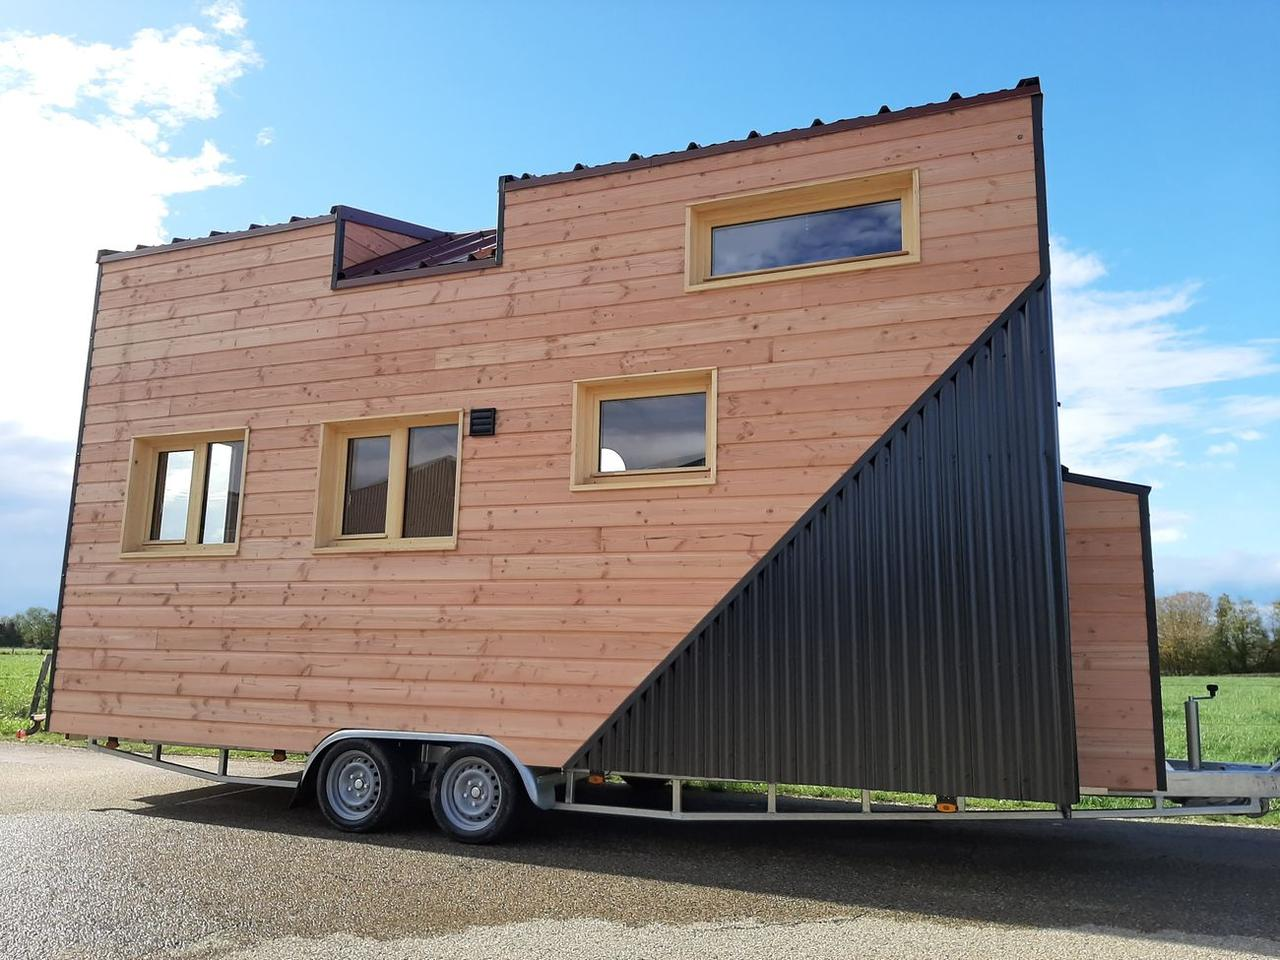 The Sébastien & Géraldine tiny house measures 6 m (19.6 ft) long and 2.55 m (8.33 ft) wide